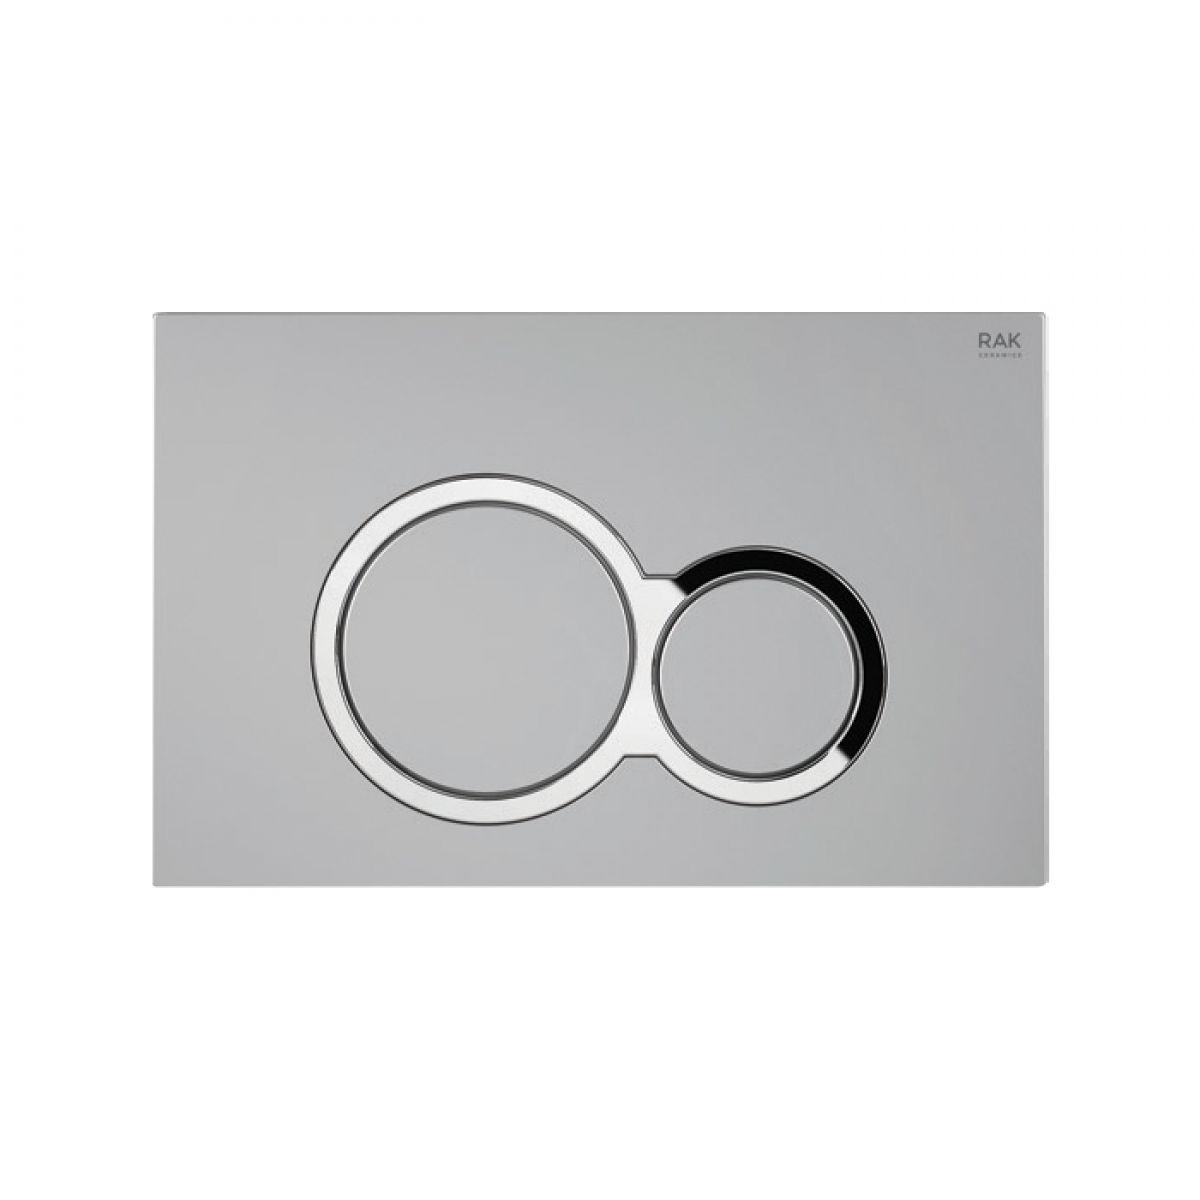 RAK Ecofix Matt Chrome Flush Plate with Surrounded Round Push Buttons